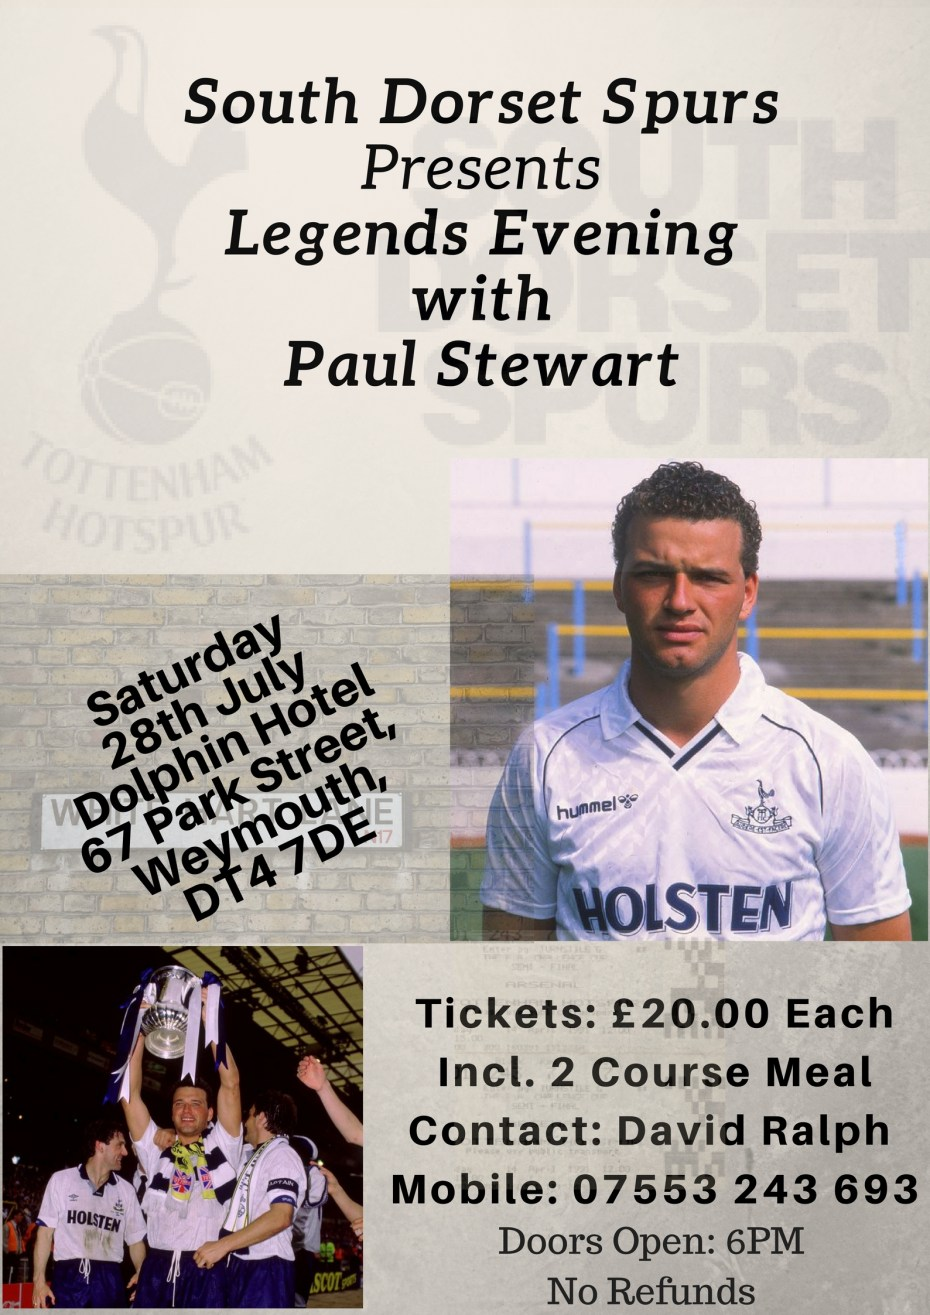 Legends Evening With Paul Stewart